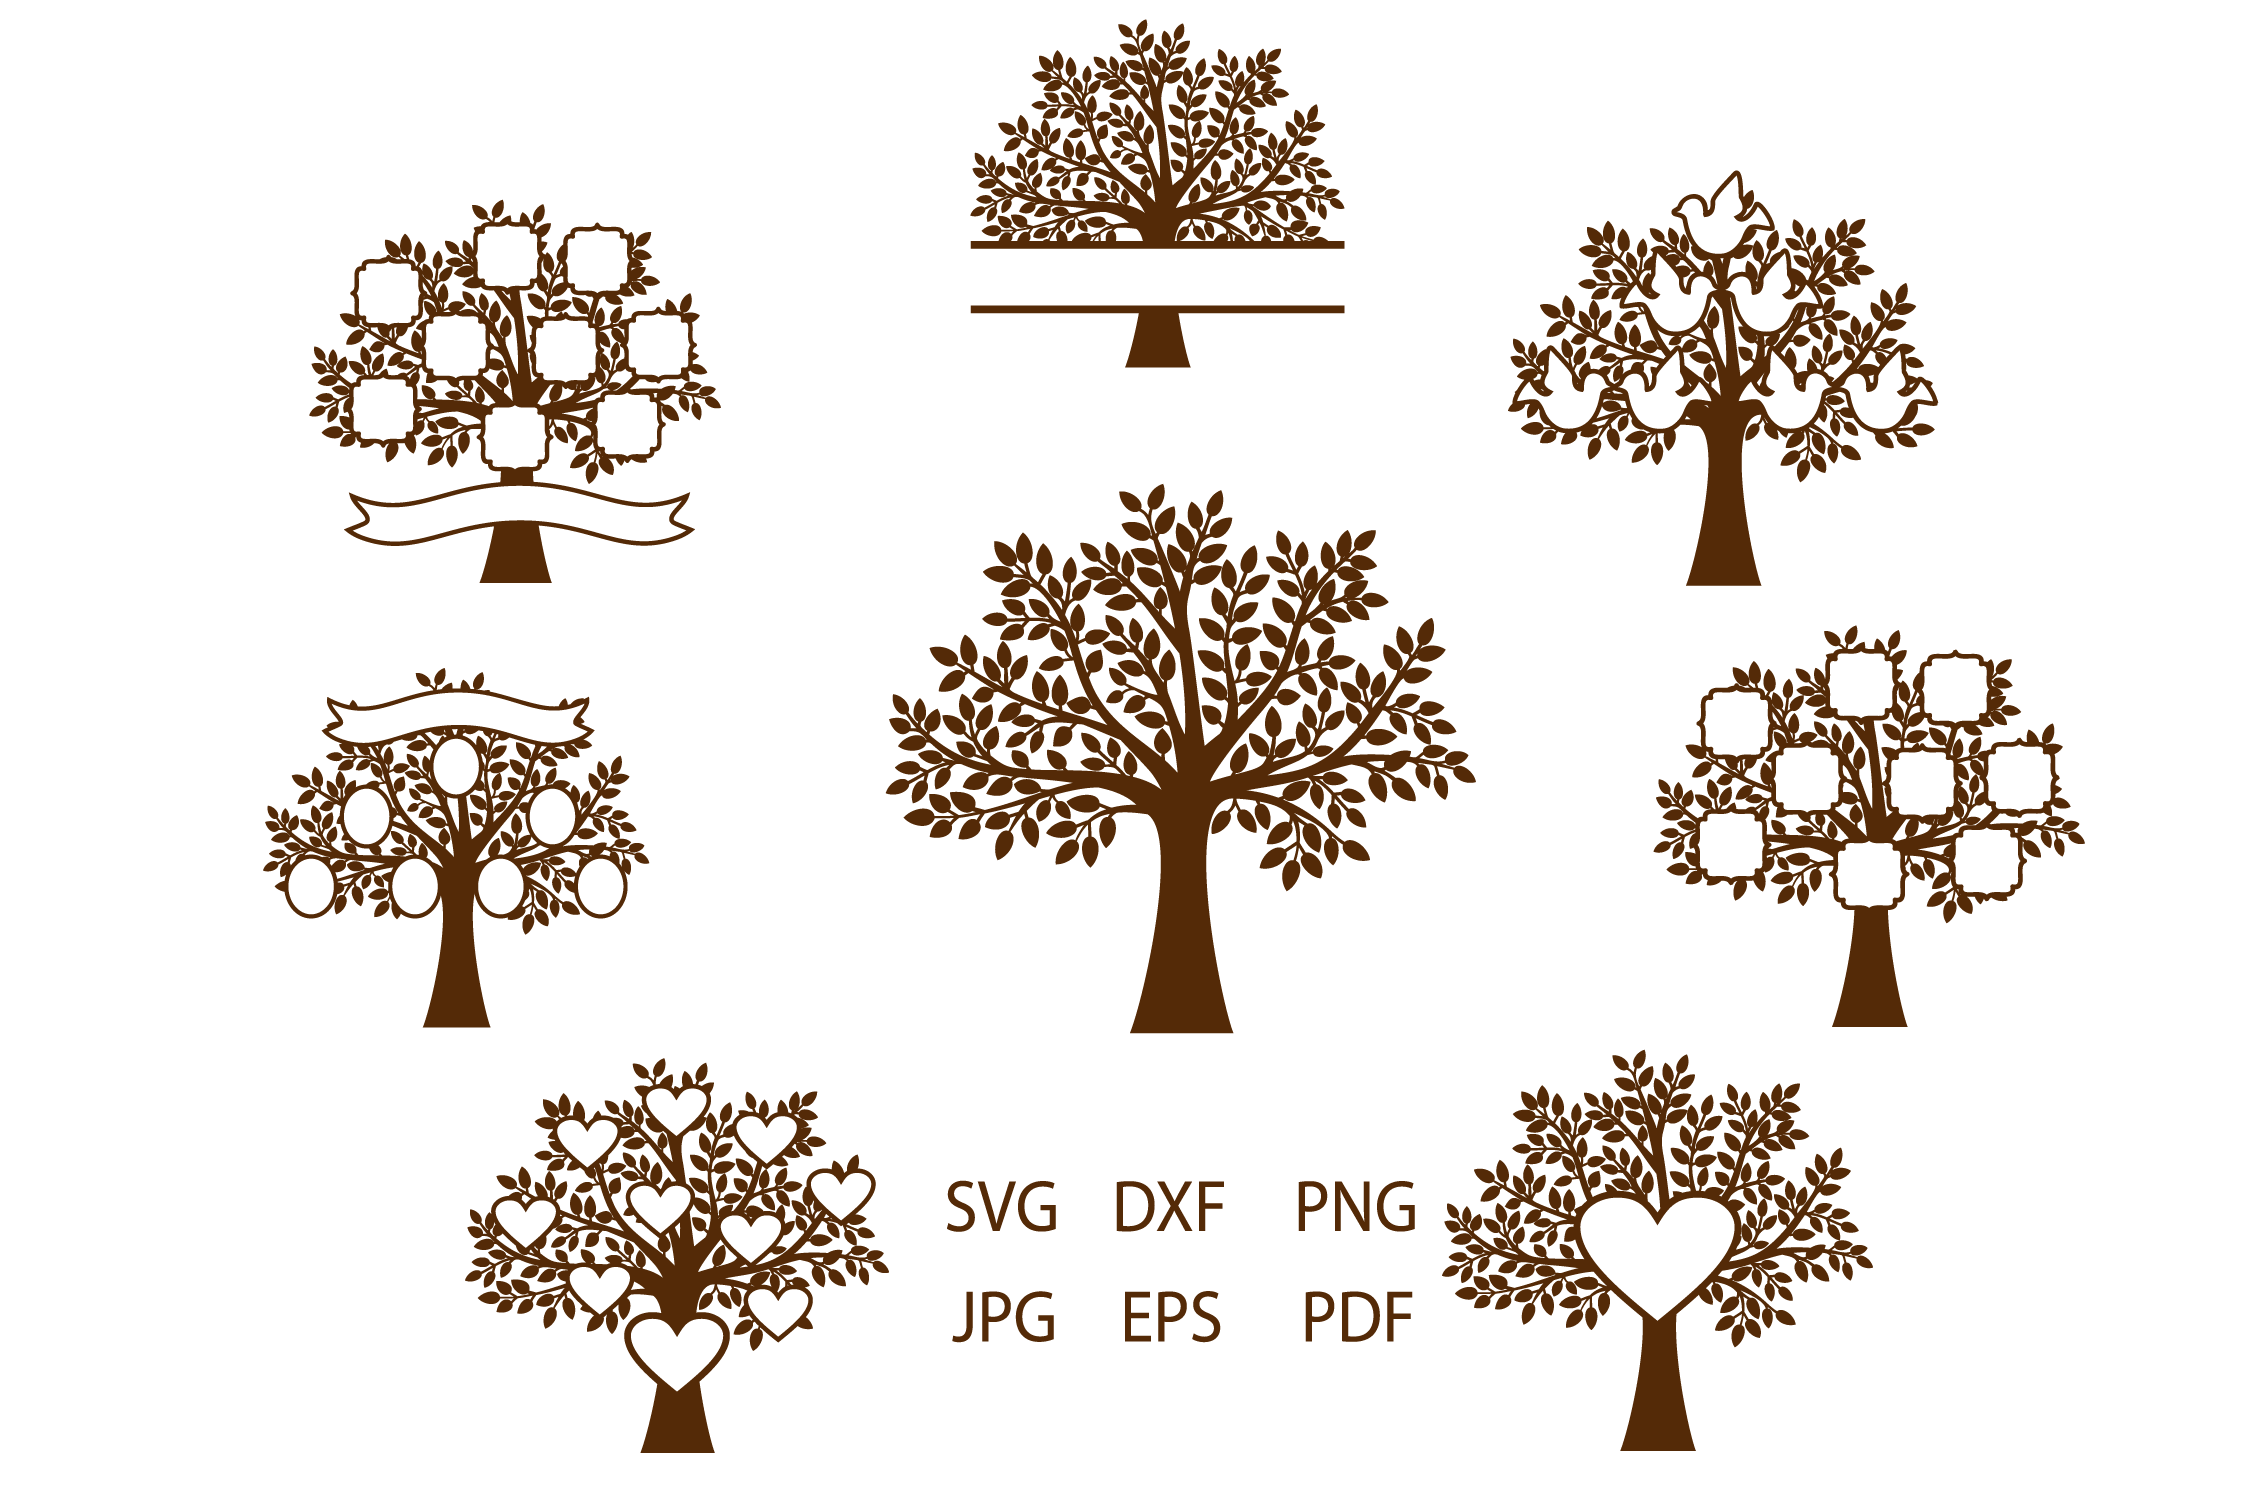 Family Tree SVG, Trees, Tree Cut File, Tree SVG For Cutting example image 2